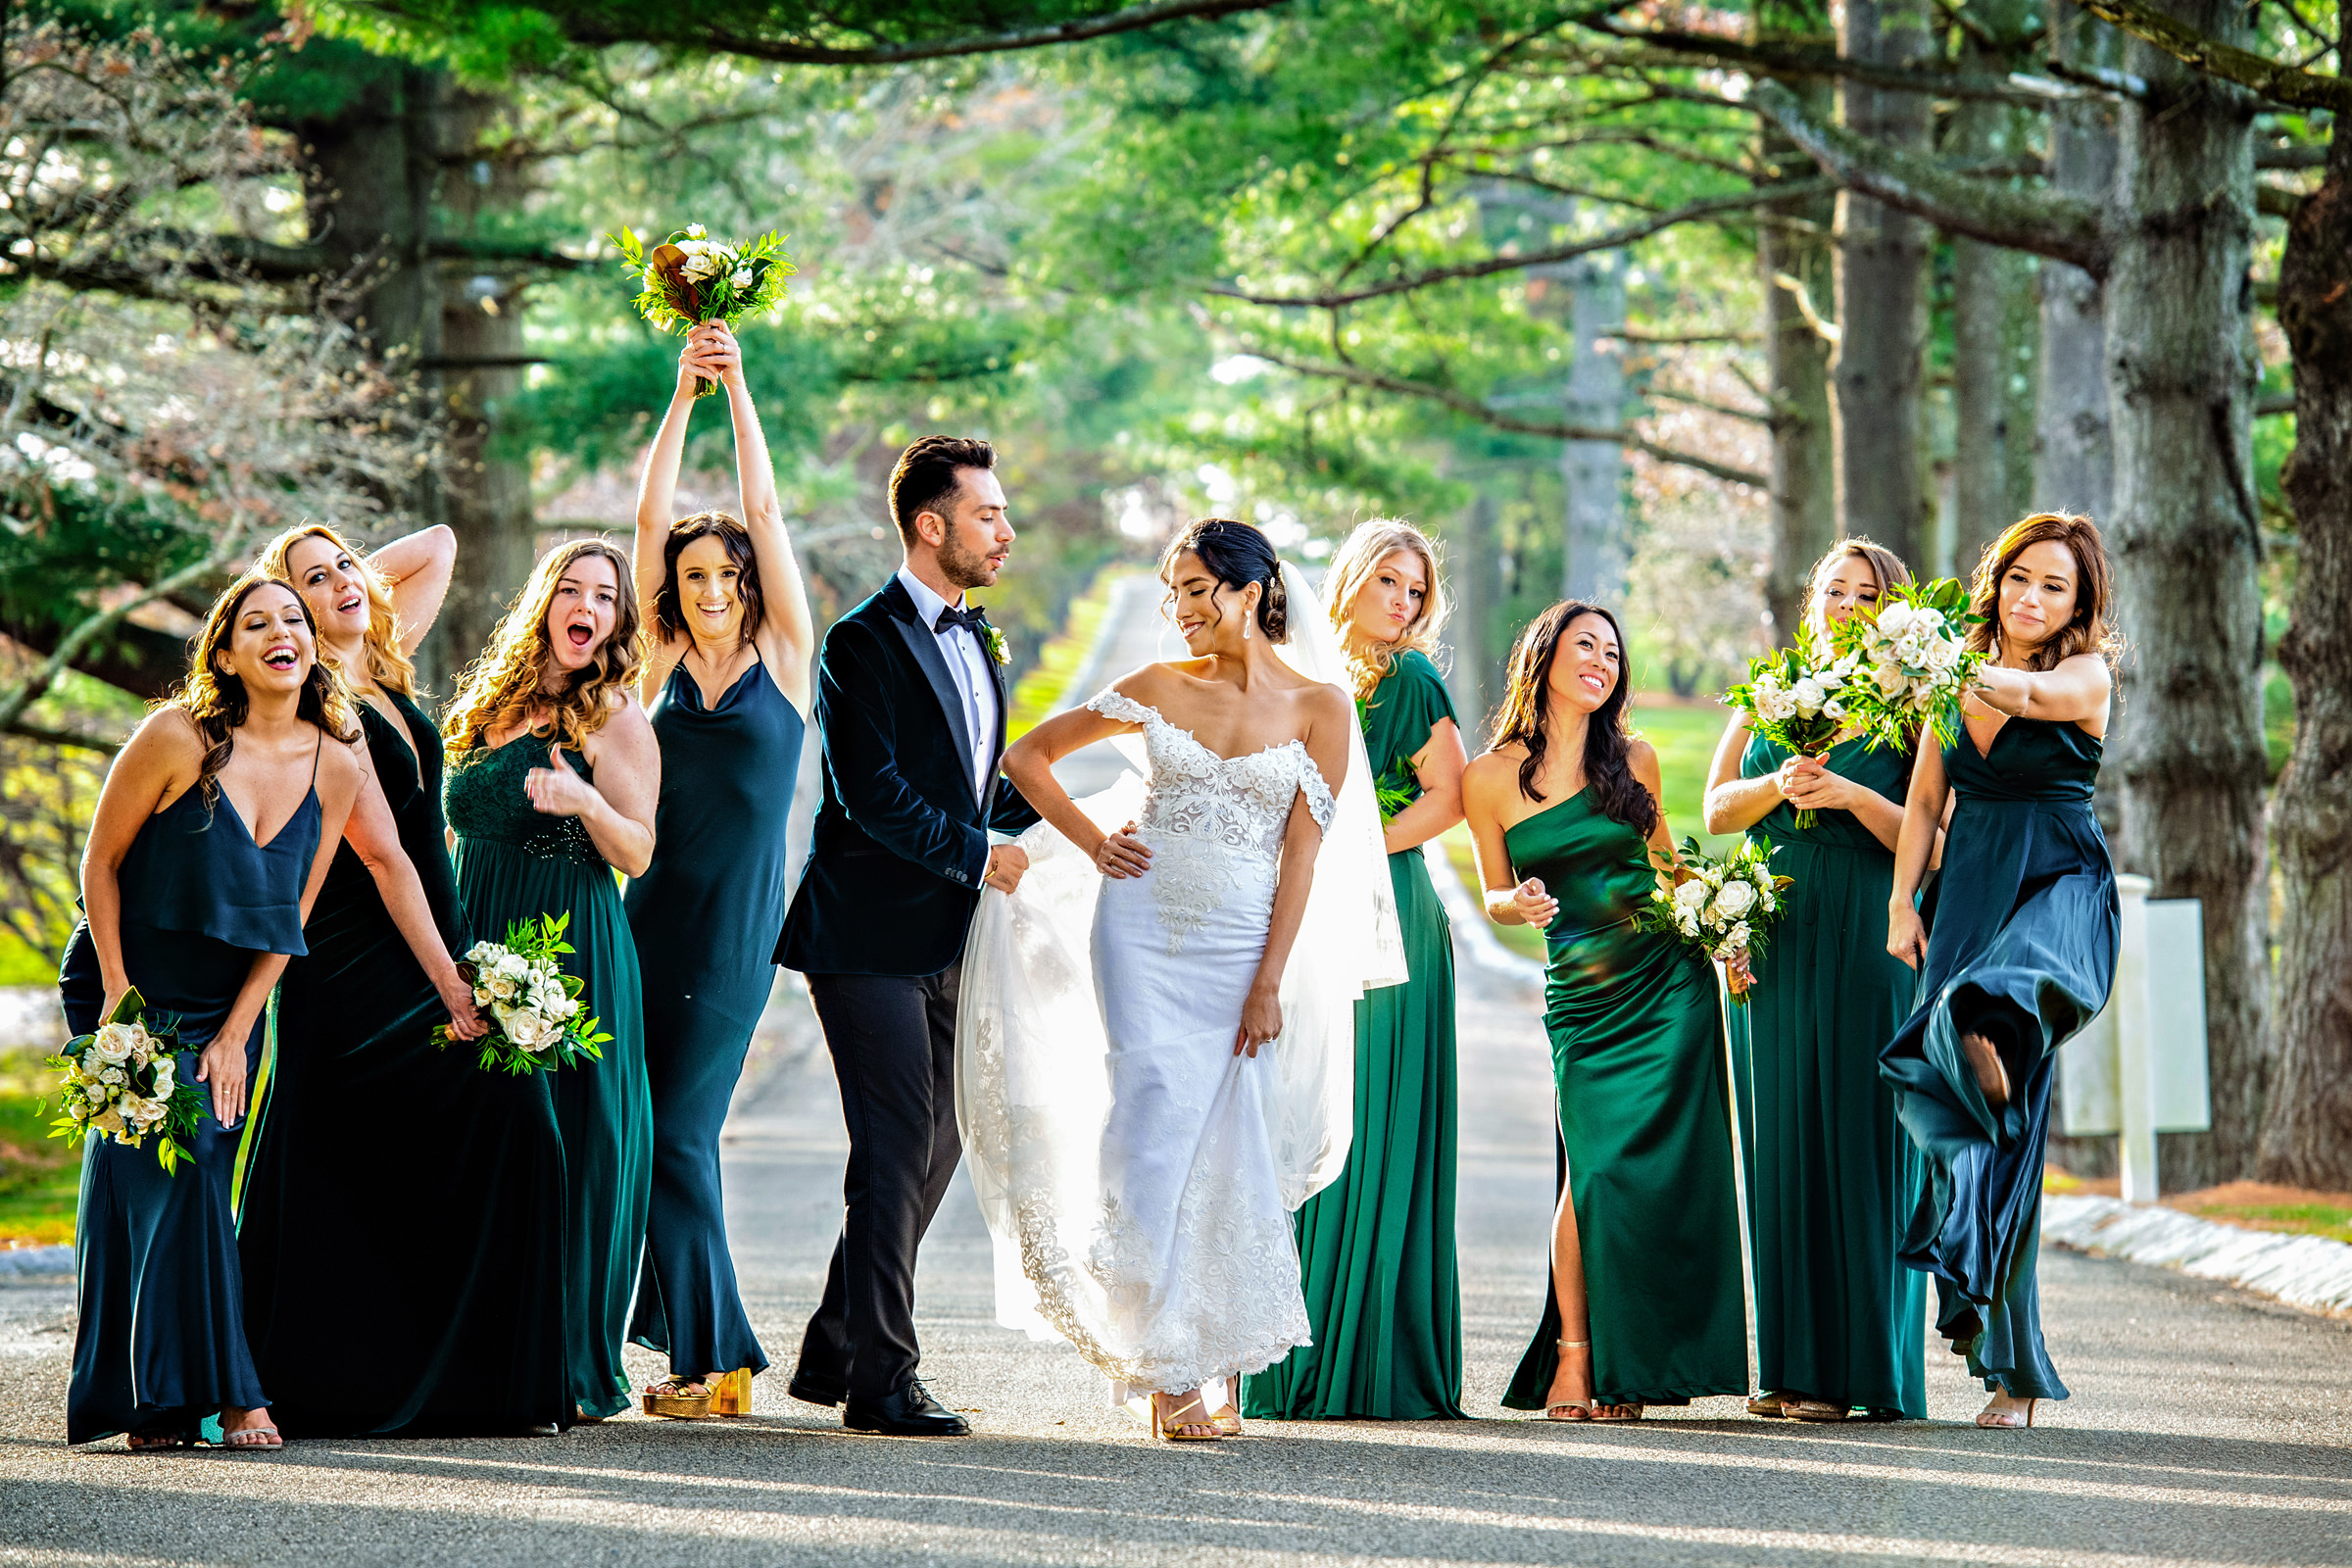 Bridesmaids in navy and emerald green spaghetti strap dresses - photographed by Jeff Tisman - New York